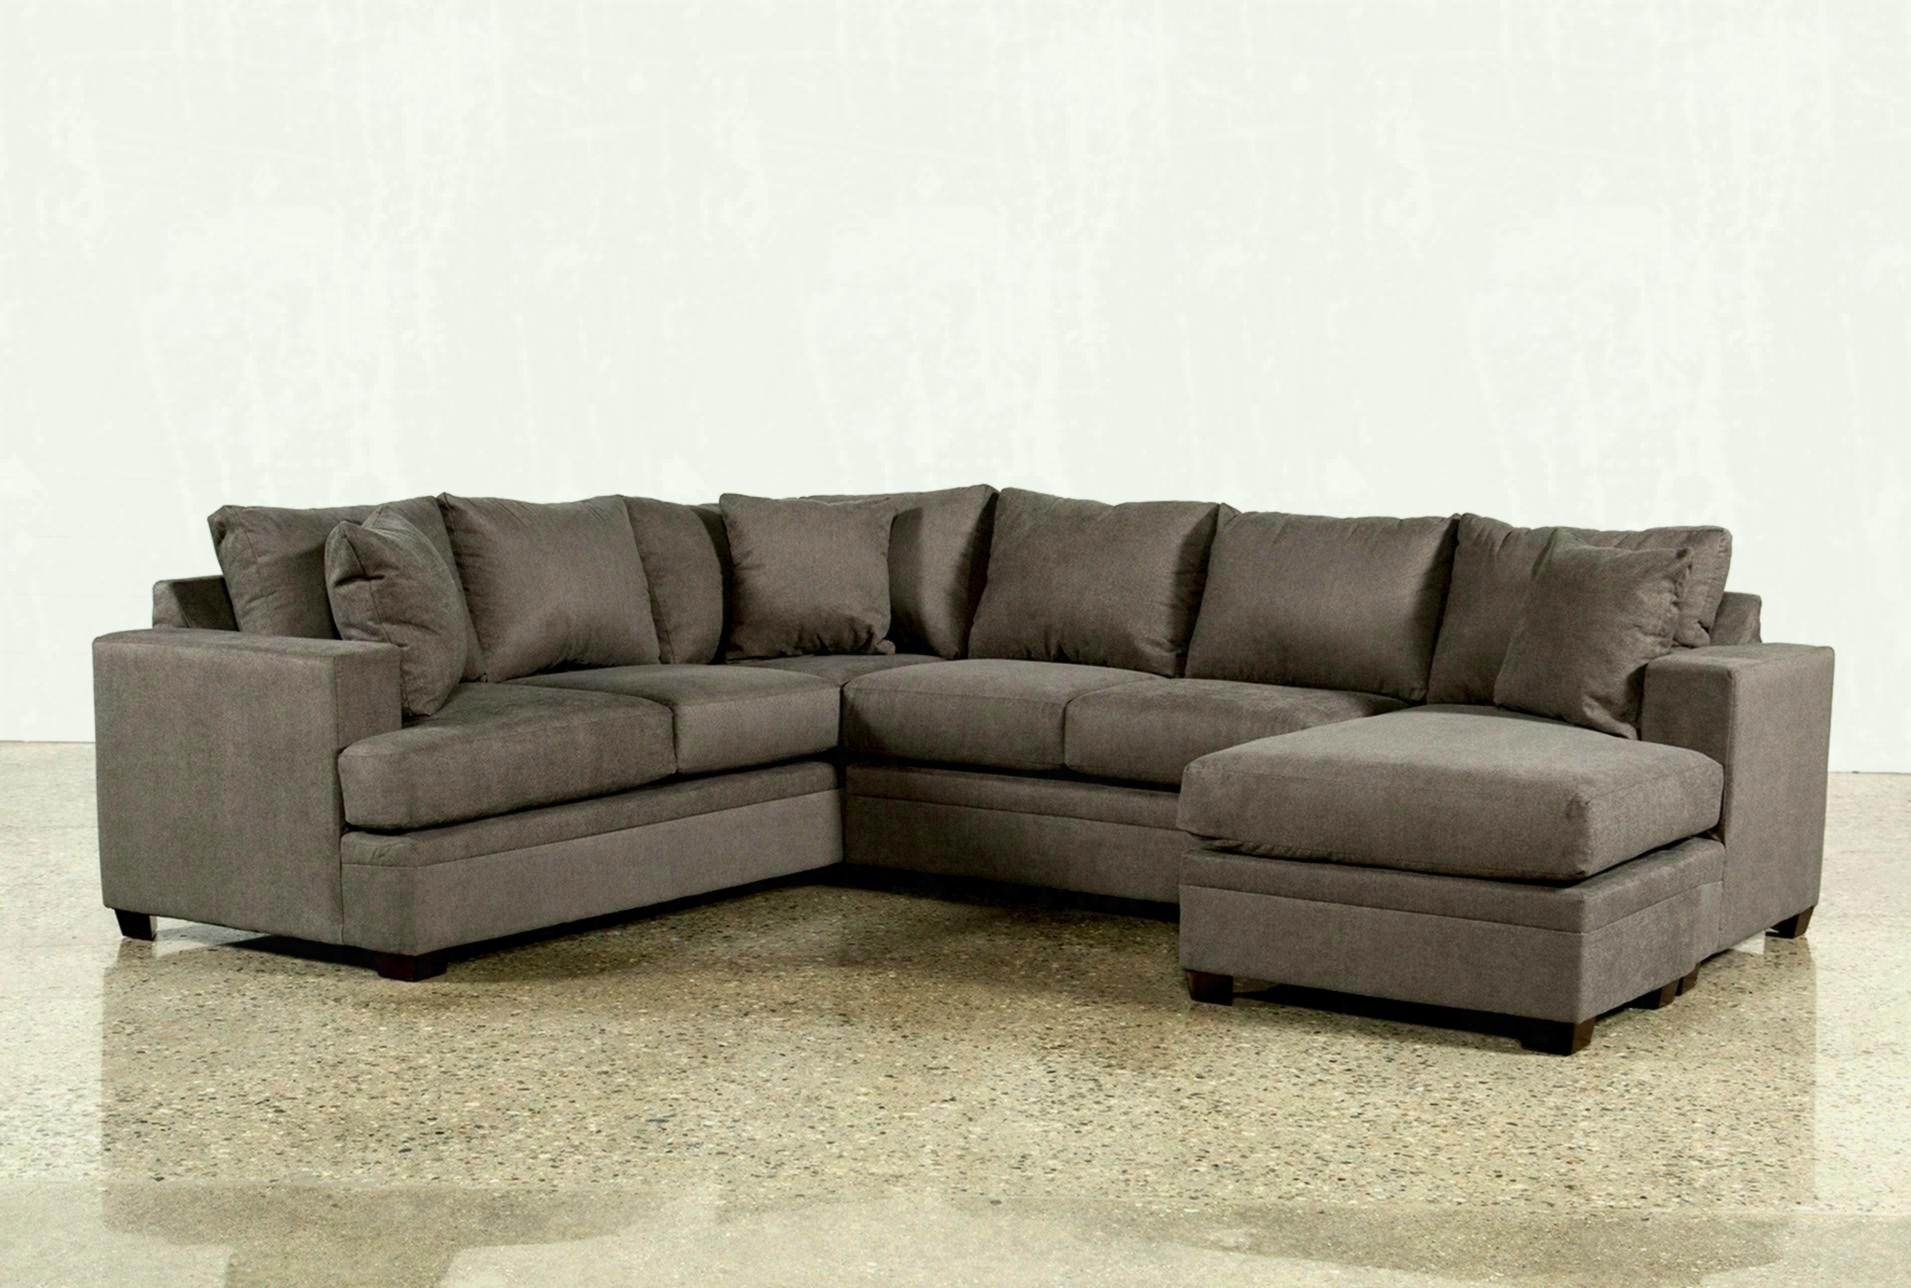 Added To Cart Kerri Piece Sectional W Raf Chaise Living Spaces With Aquarius Light Grey 2 Piece Sectionals With Raf Chaise (Image 3 of 25)